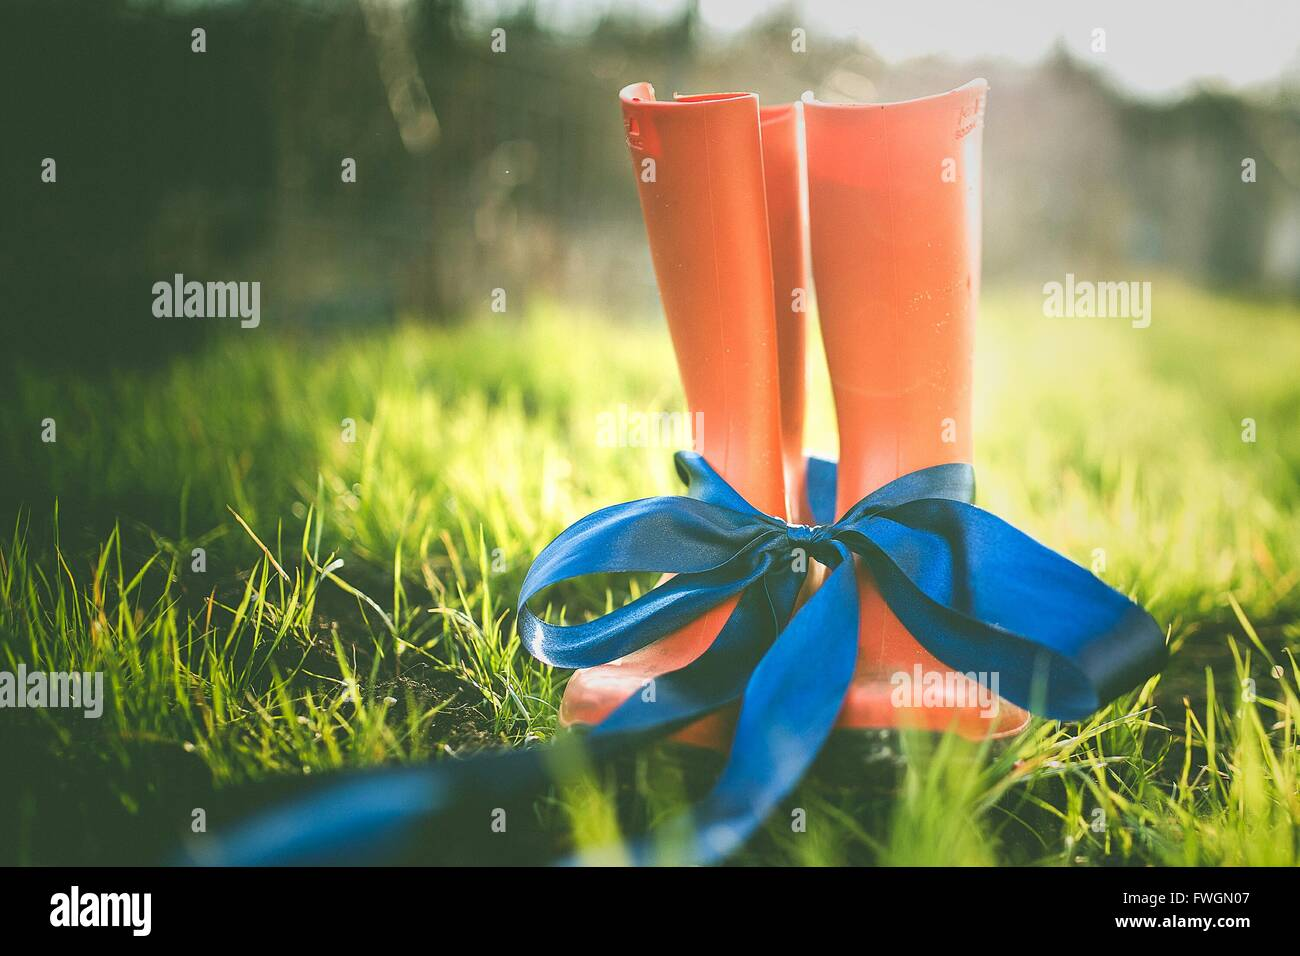 Close-Up Of Rubber Boot Tied Up With Blue Ribbon - Stock Image